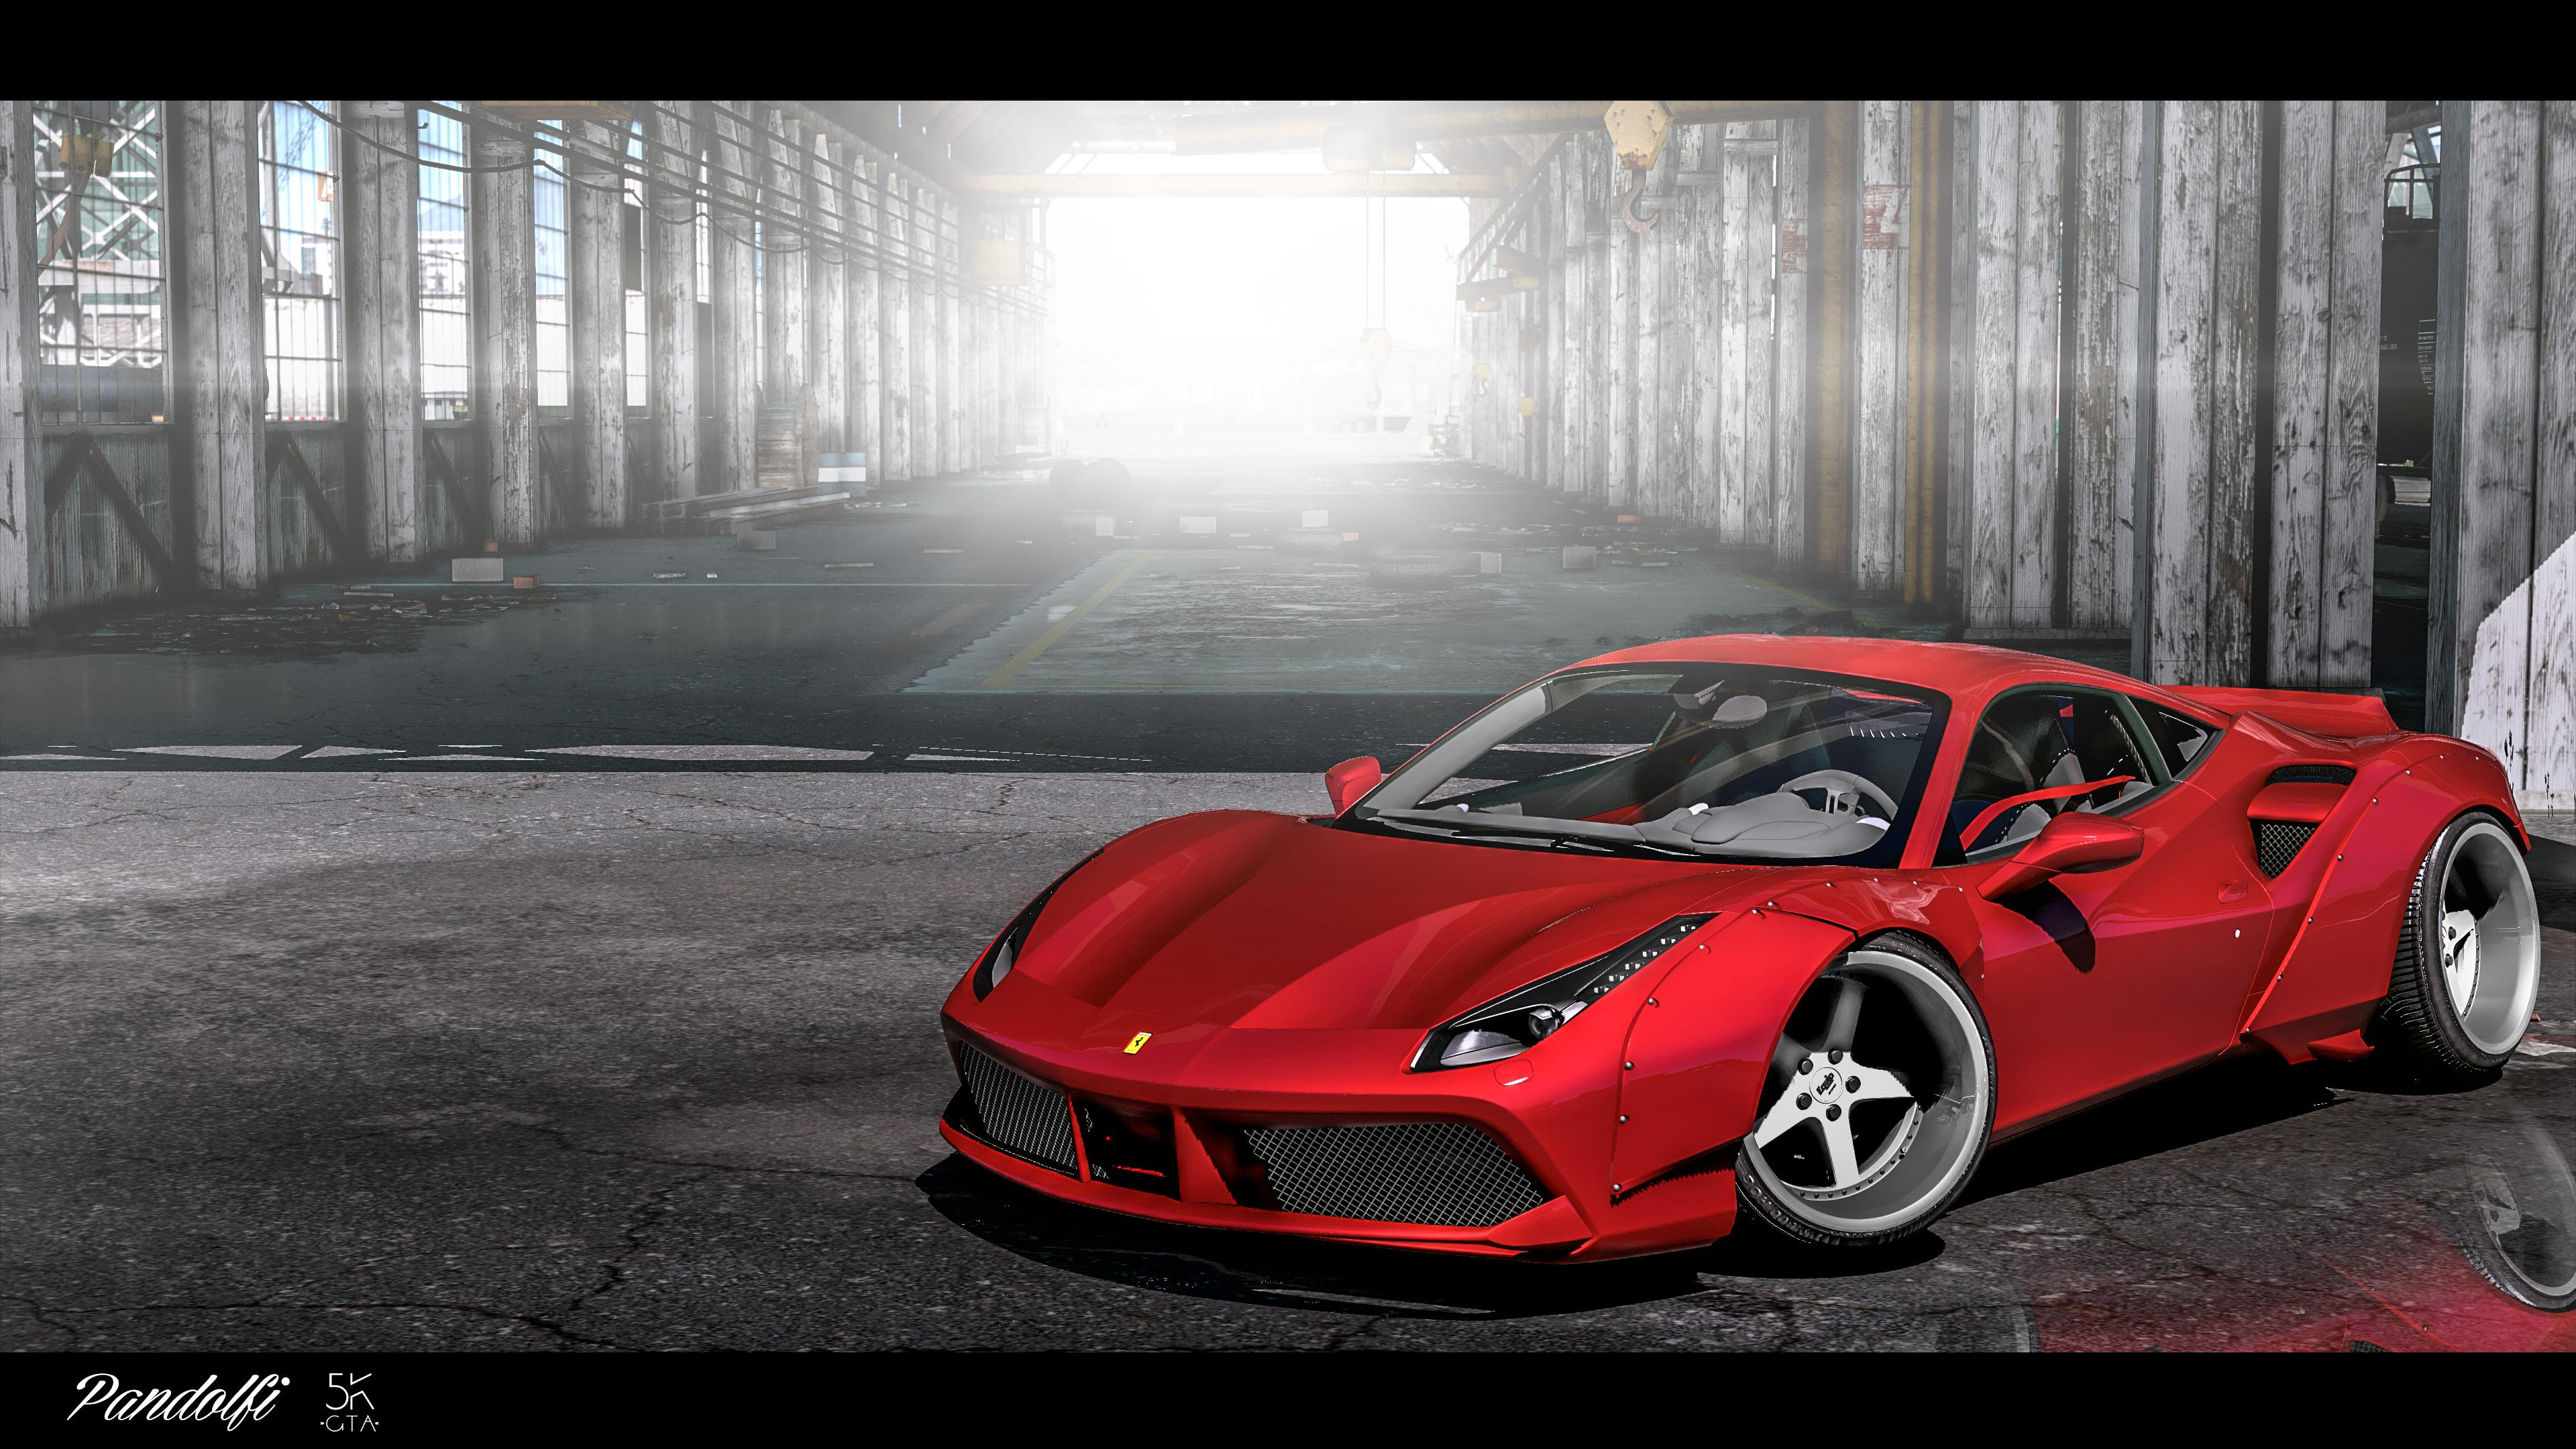 2016 ferrari 488 gtb liberty walk gta5. Black Bedroom Furniture Sets. Home Design Ideas